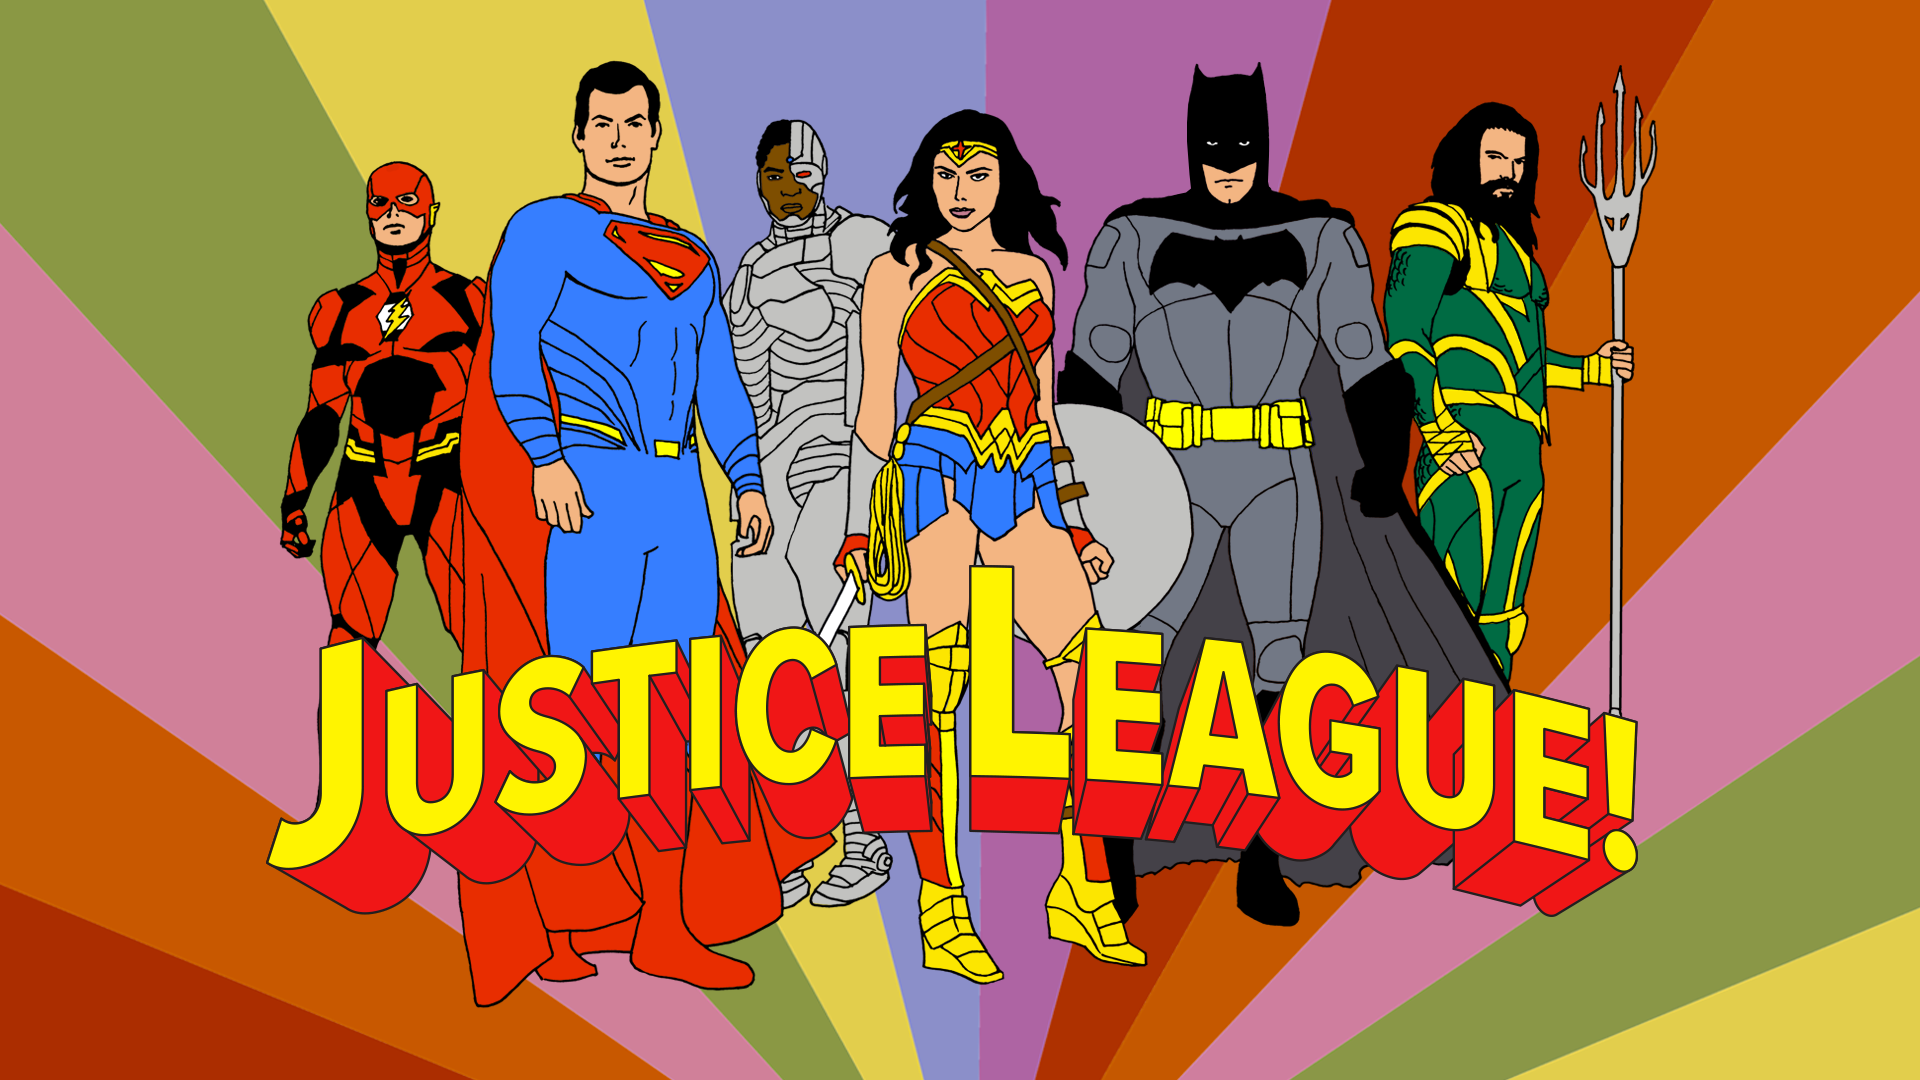 Justice League Desktop Wallpaper